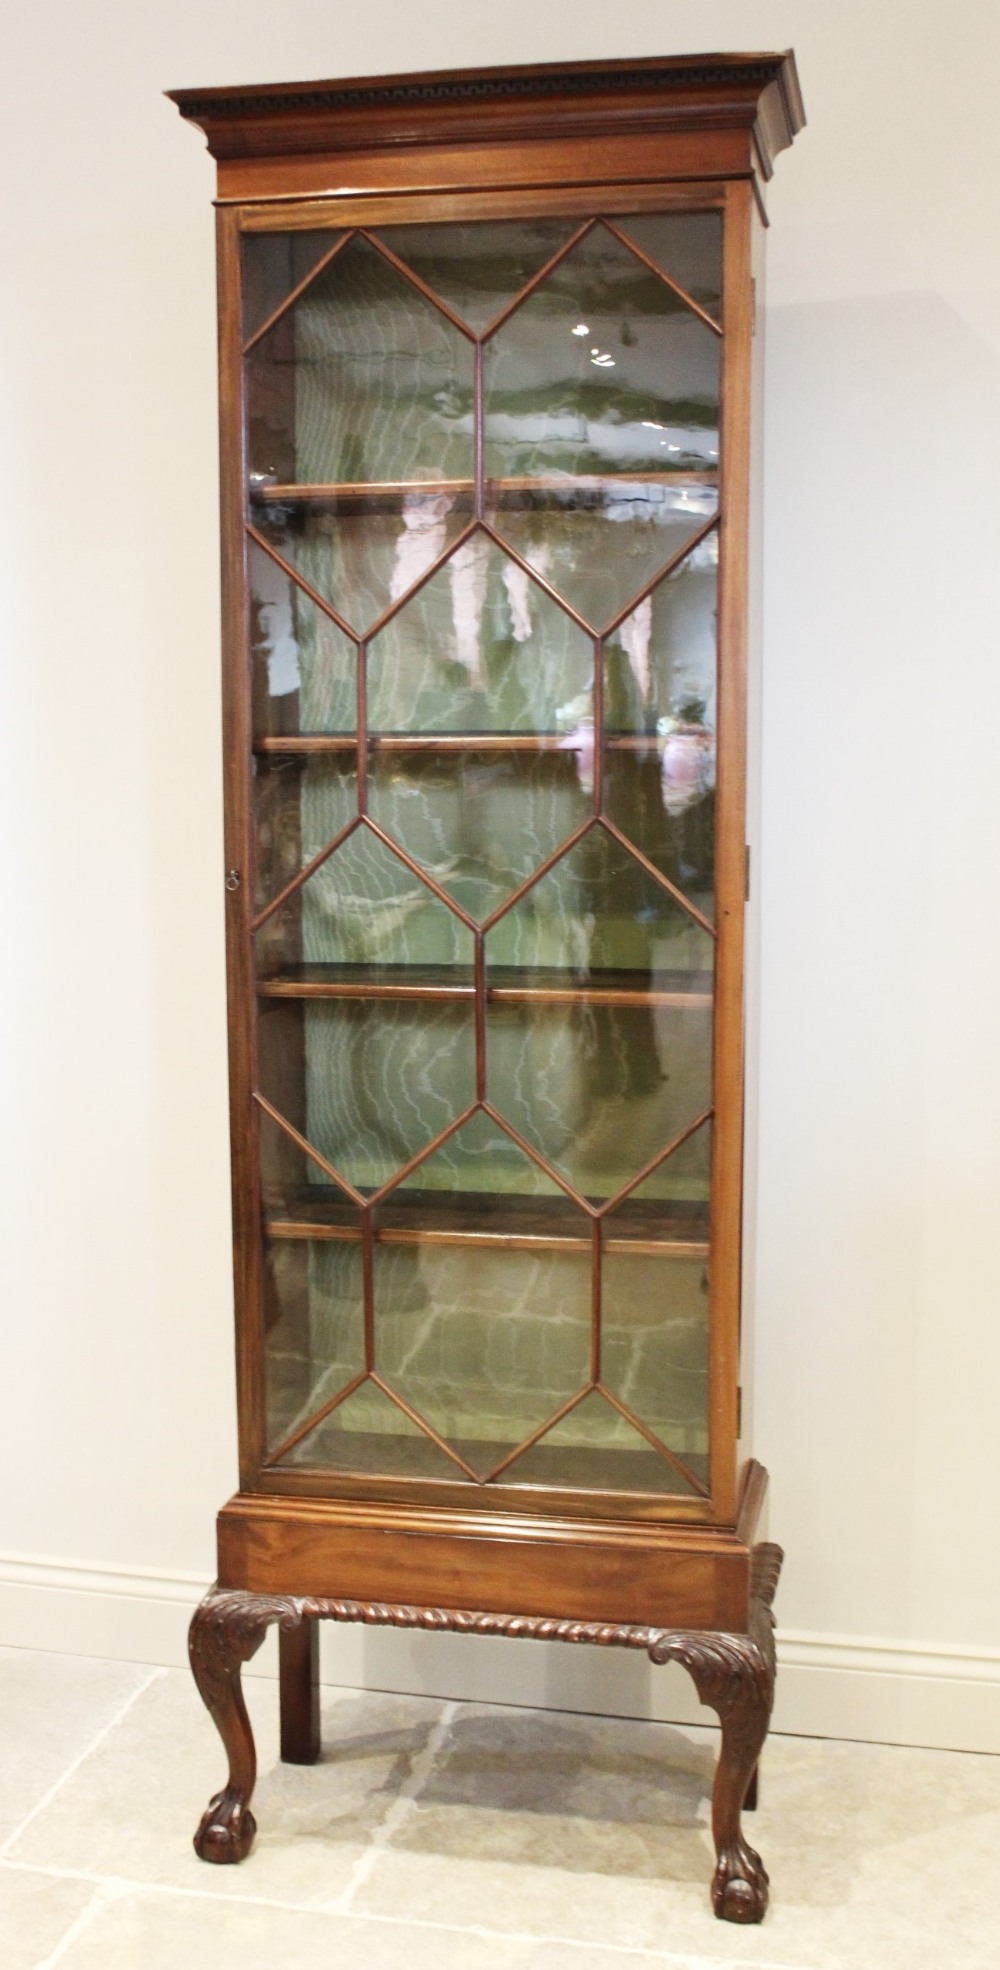 An early 20th century Chippendale revival mahogany display cabinet, with a Greek key pattern